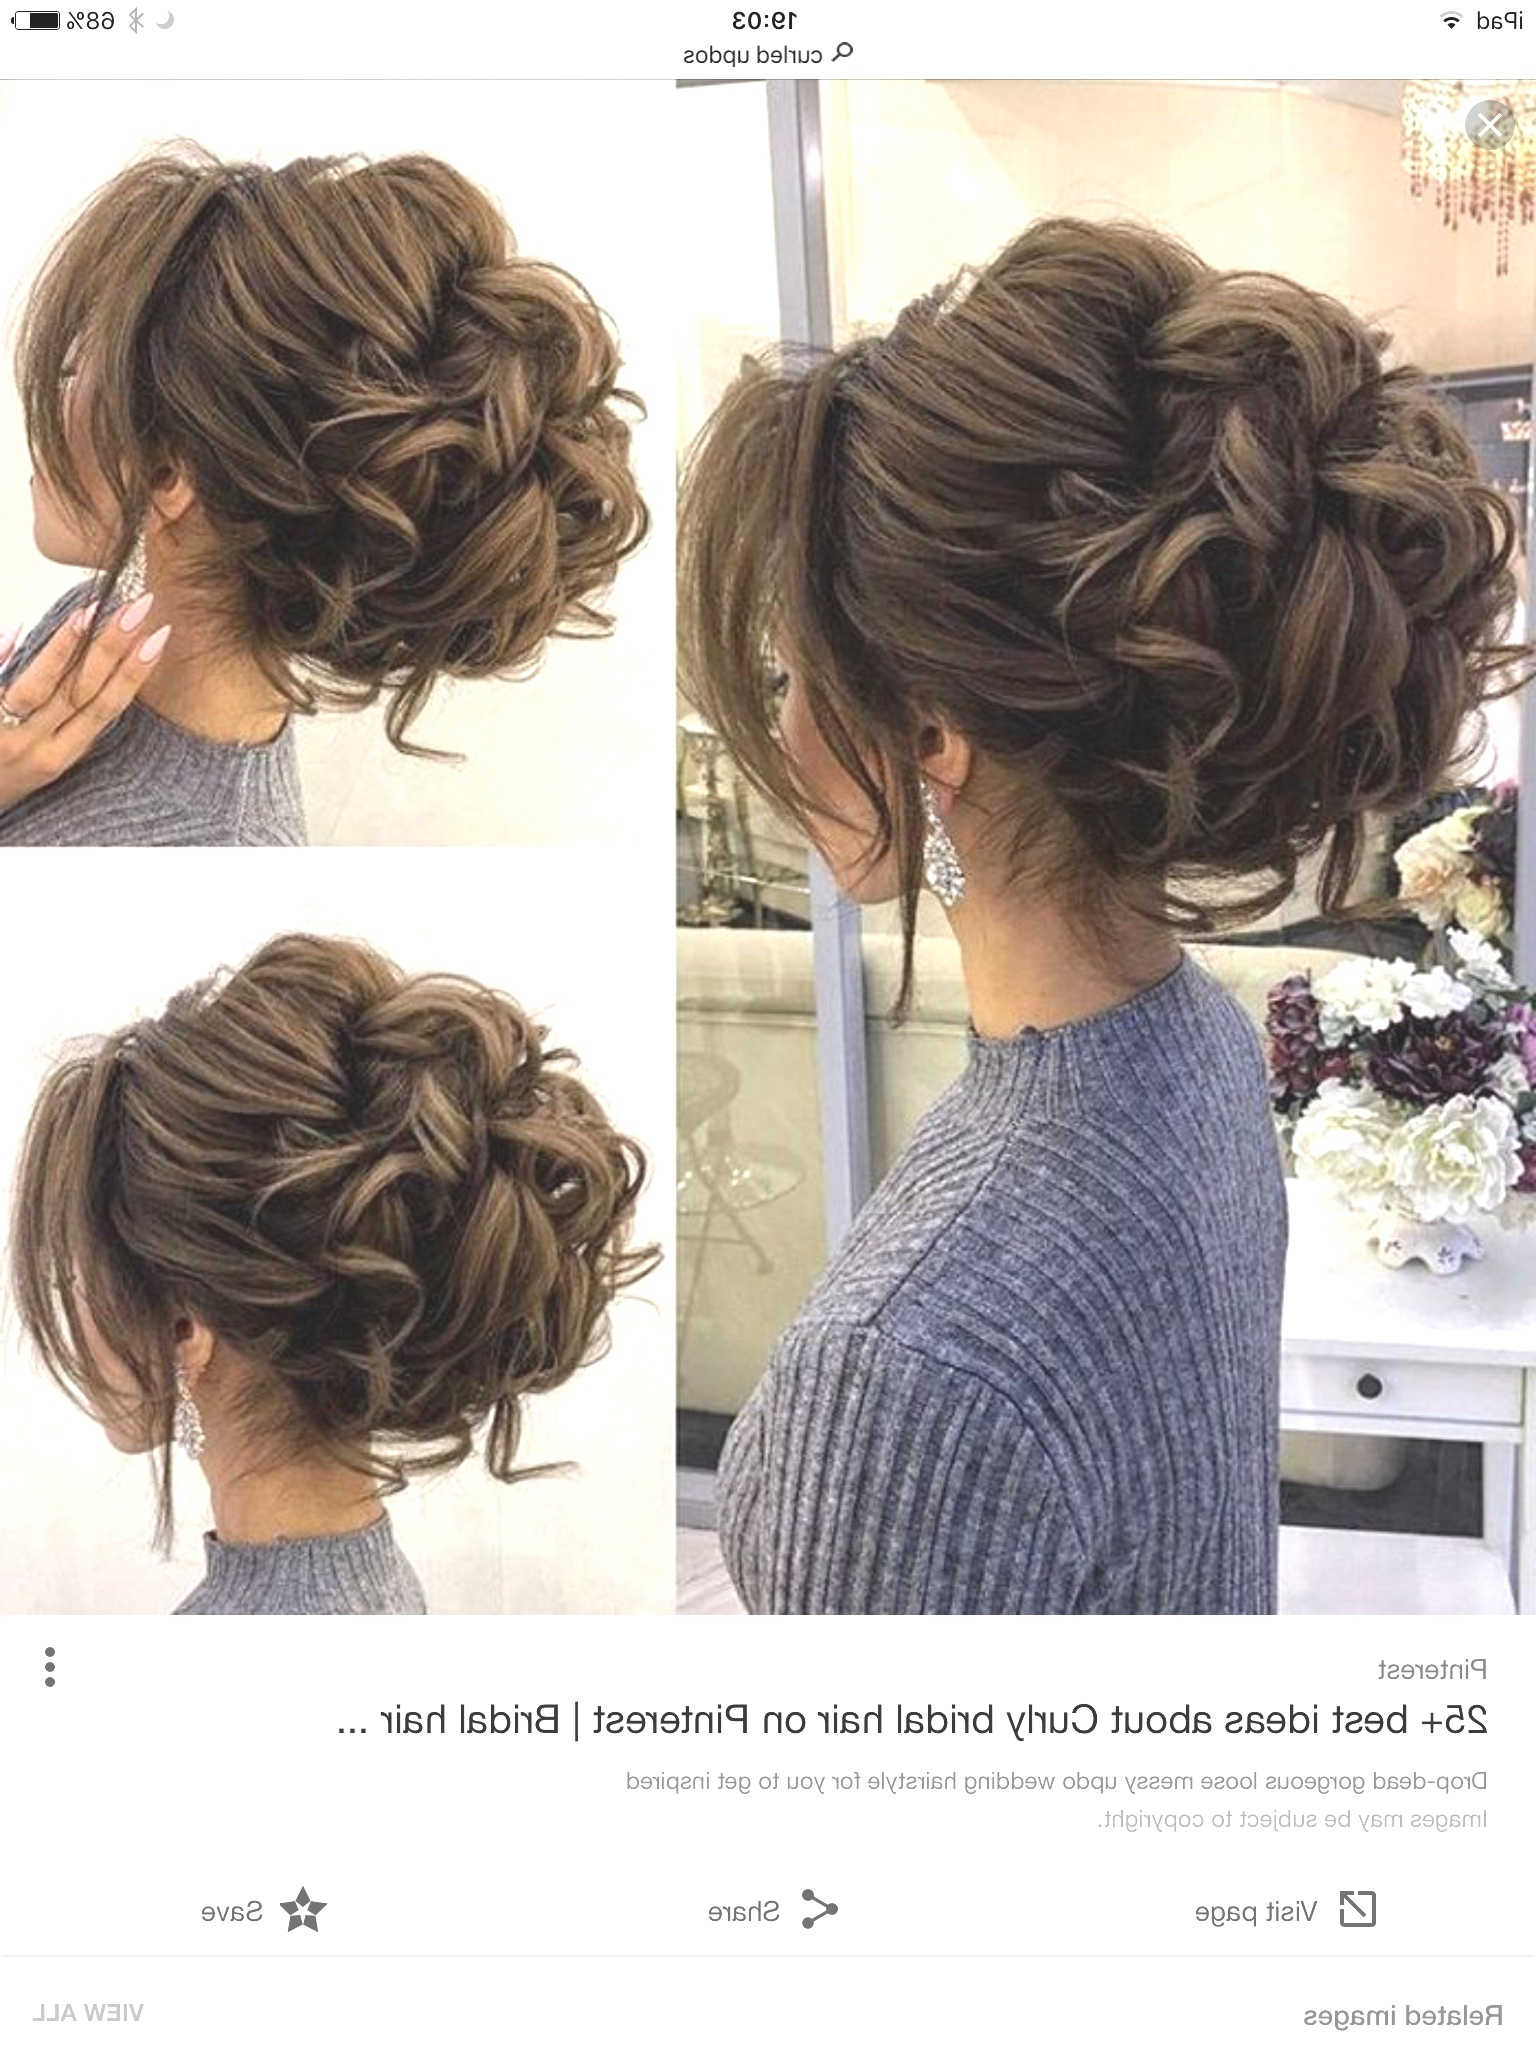 Hairstyles : Curly Side Bun Wedding Hairstyles Astounding Hair For With Fashionable Side Bun Prom Hairstyles With Soft Curls (View 10 of 20)